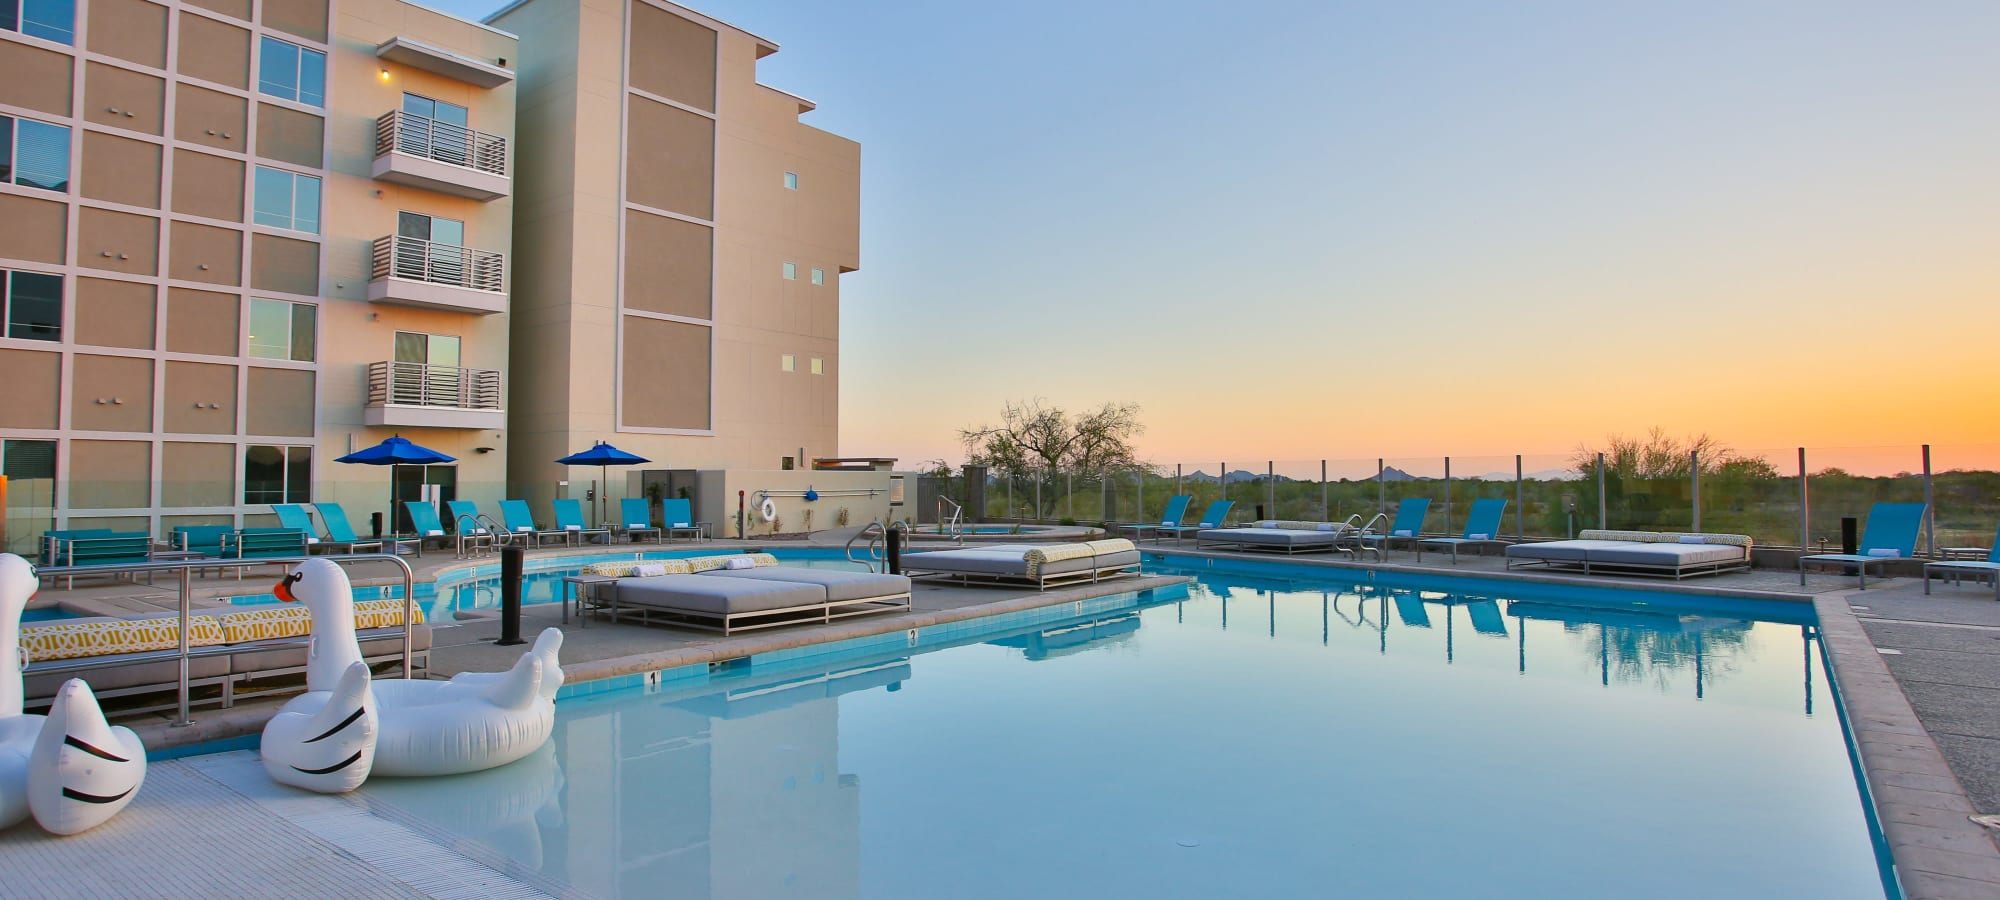 Swimming pool at sunrise at Slate Scottsdale in Phoenix, Arizona